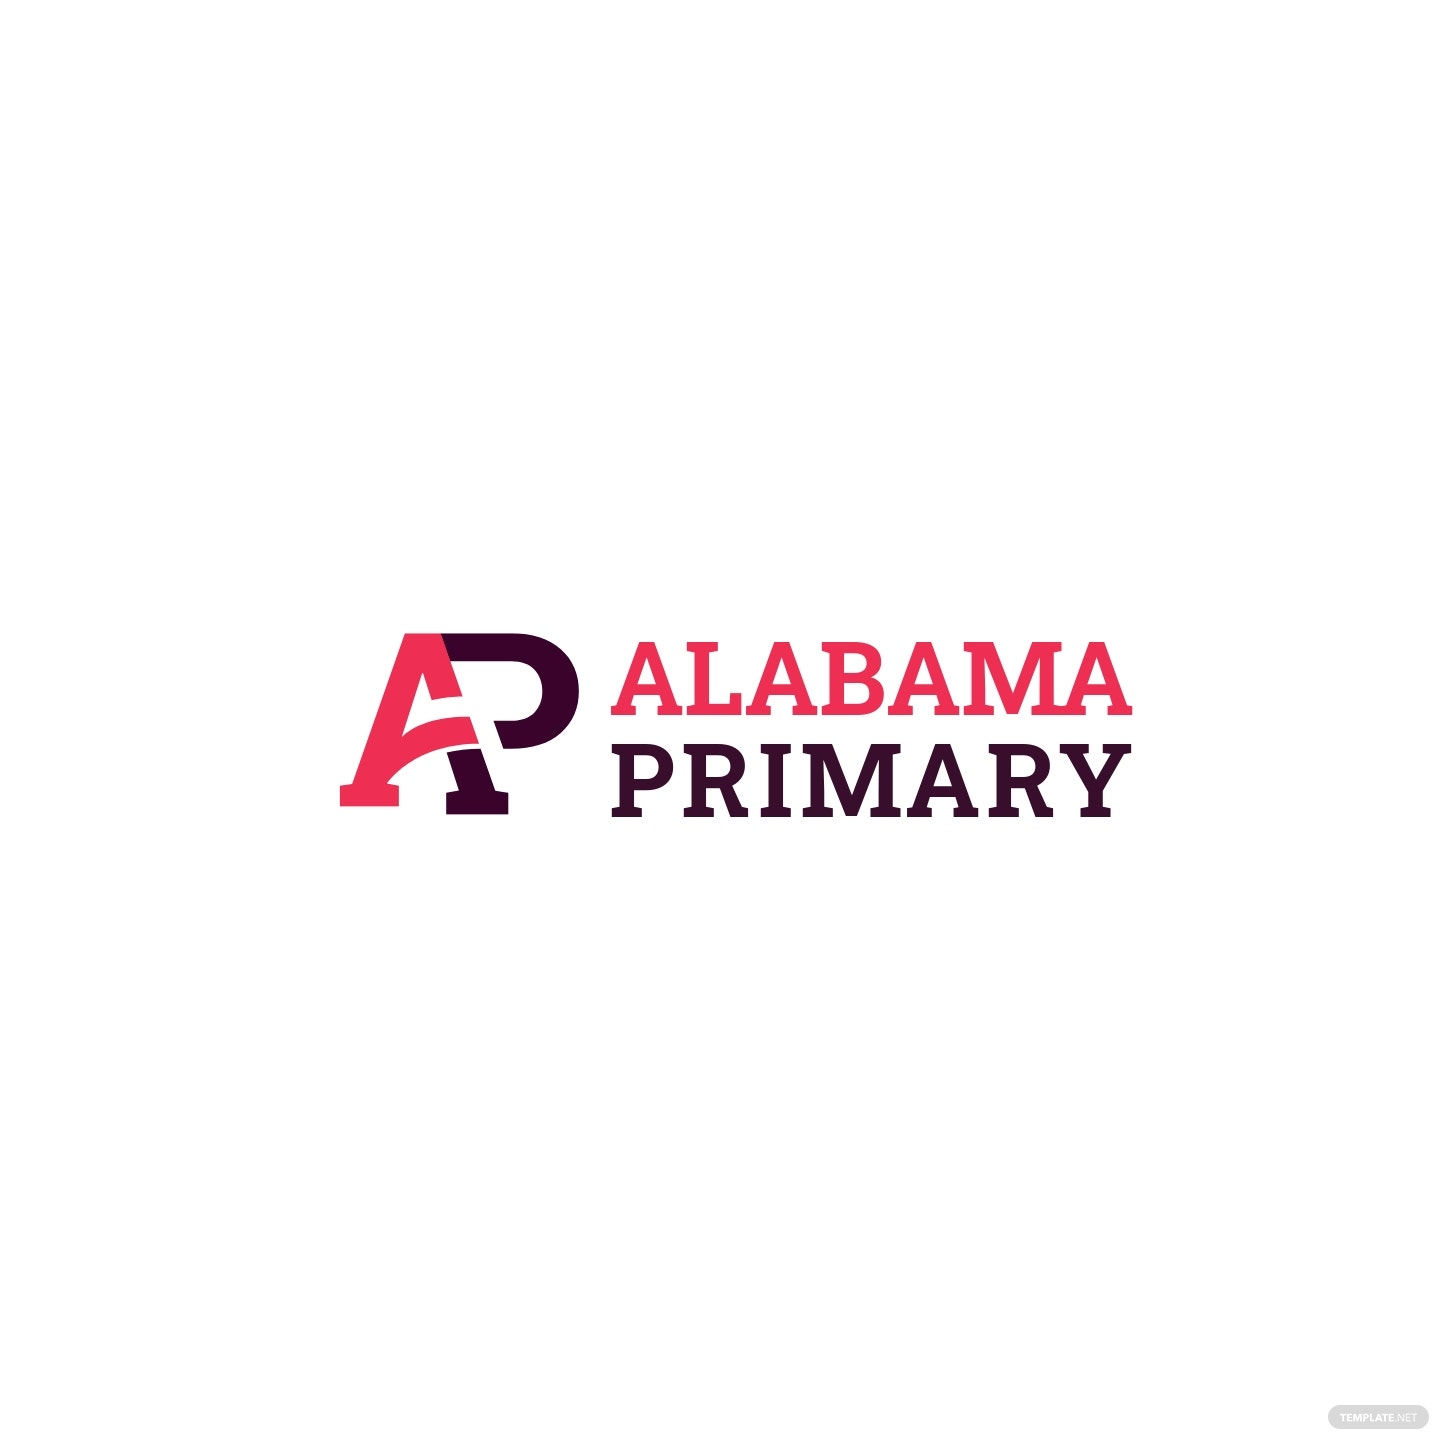 Alabama Primary Logo Template